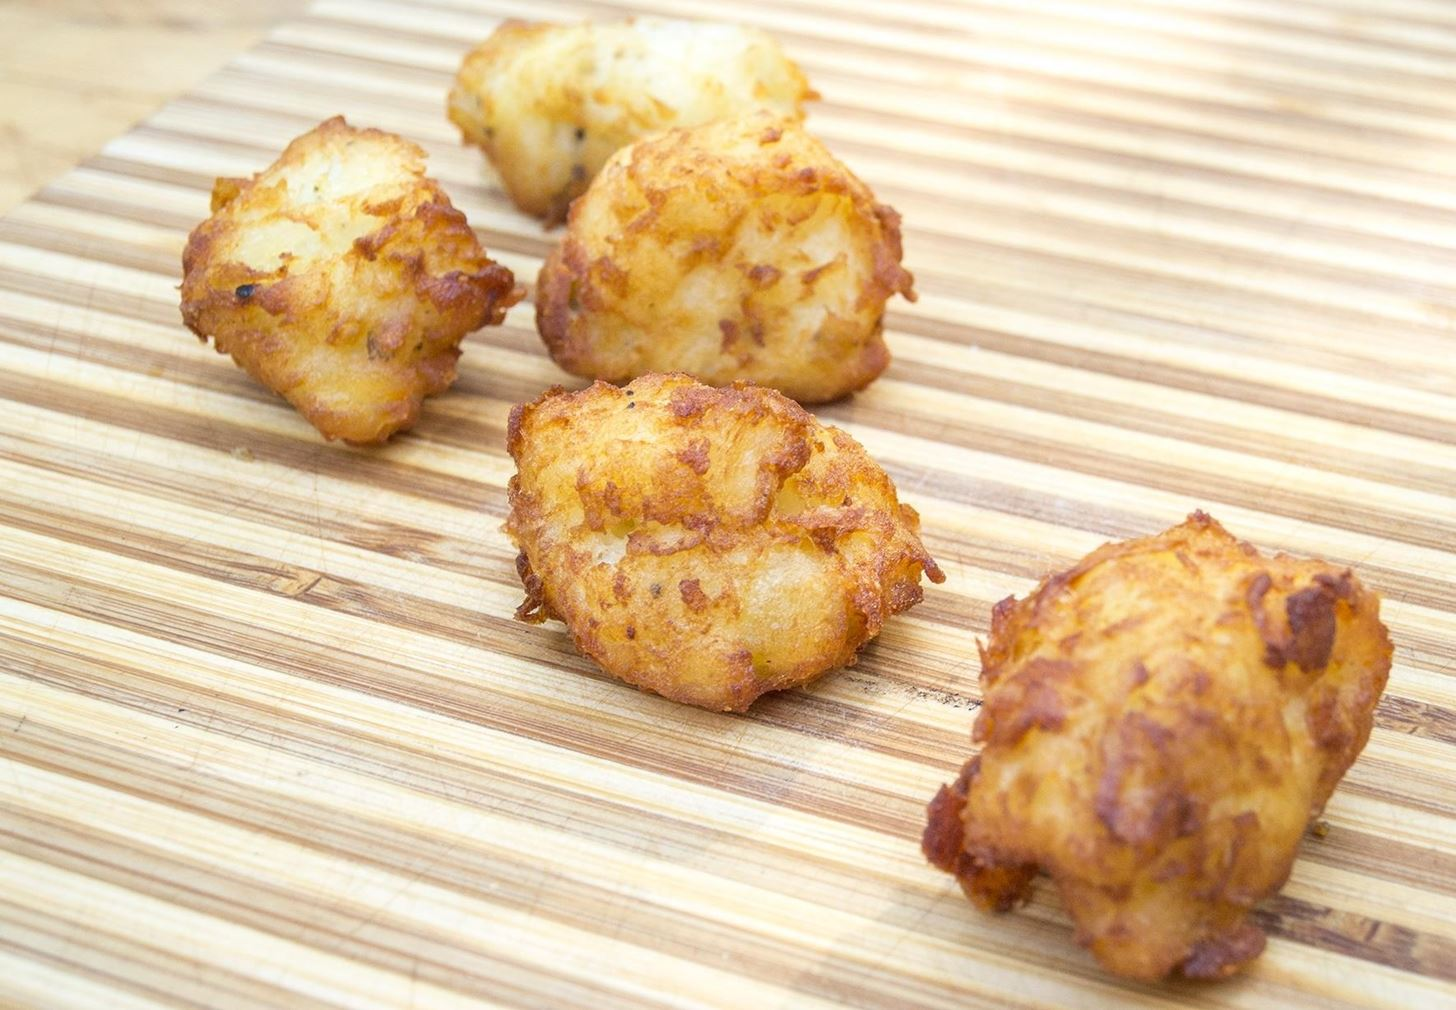 How to Make REAL Tater Tots at Home